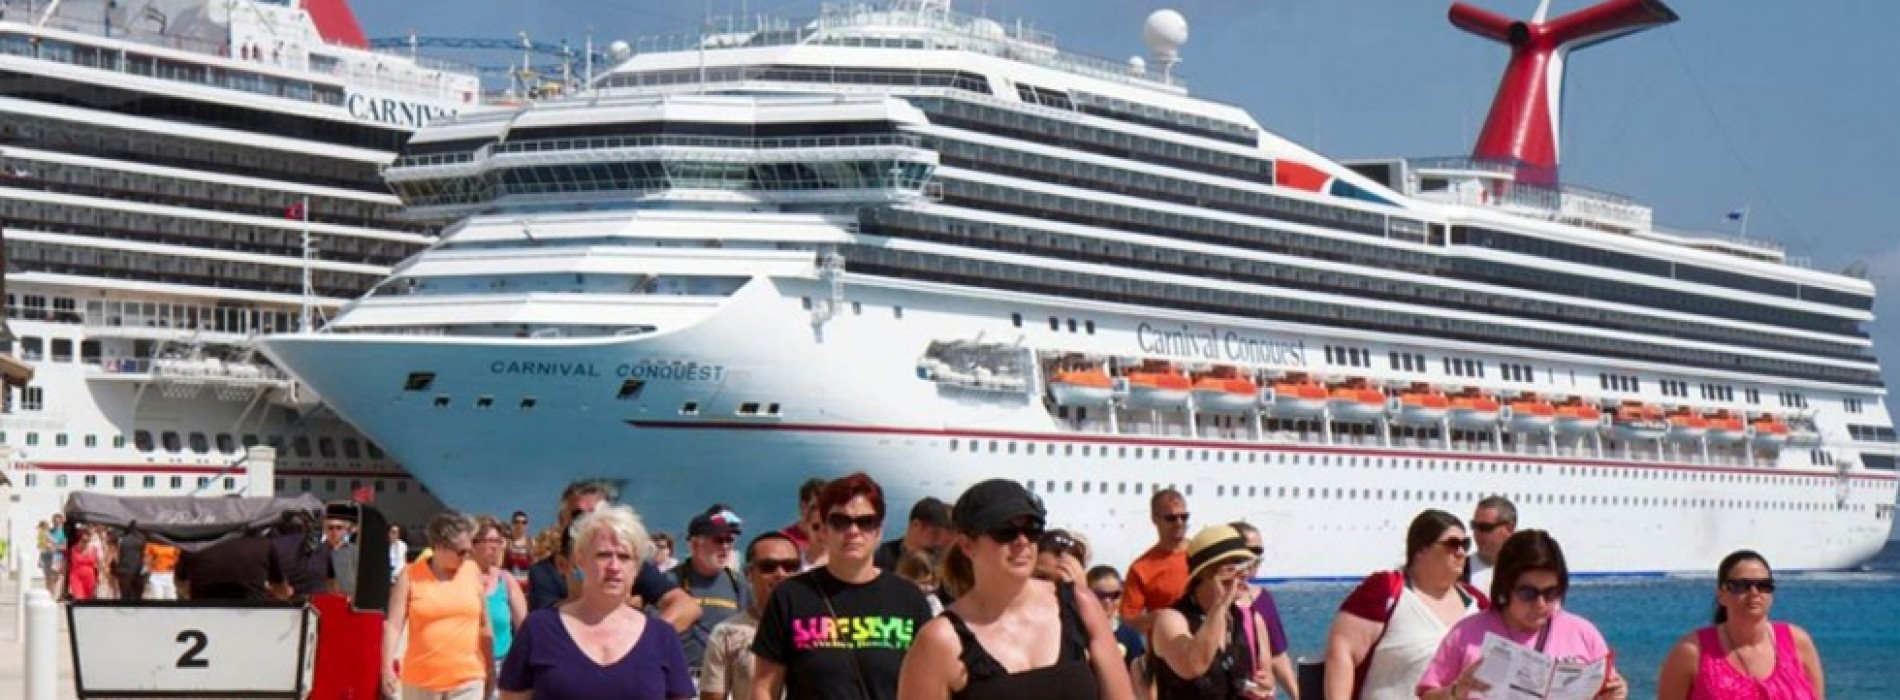 Cruise tourists with e-visas exempt from biometric enrolment requirement